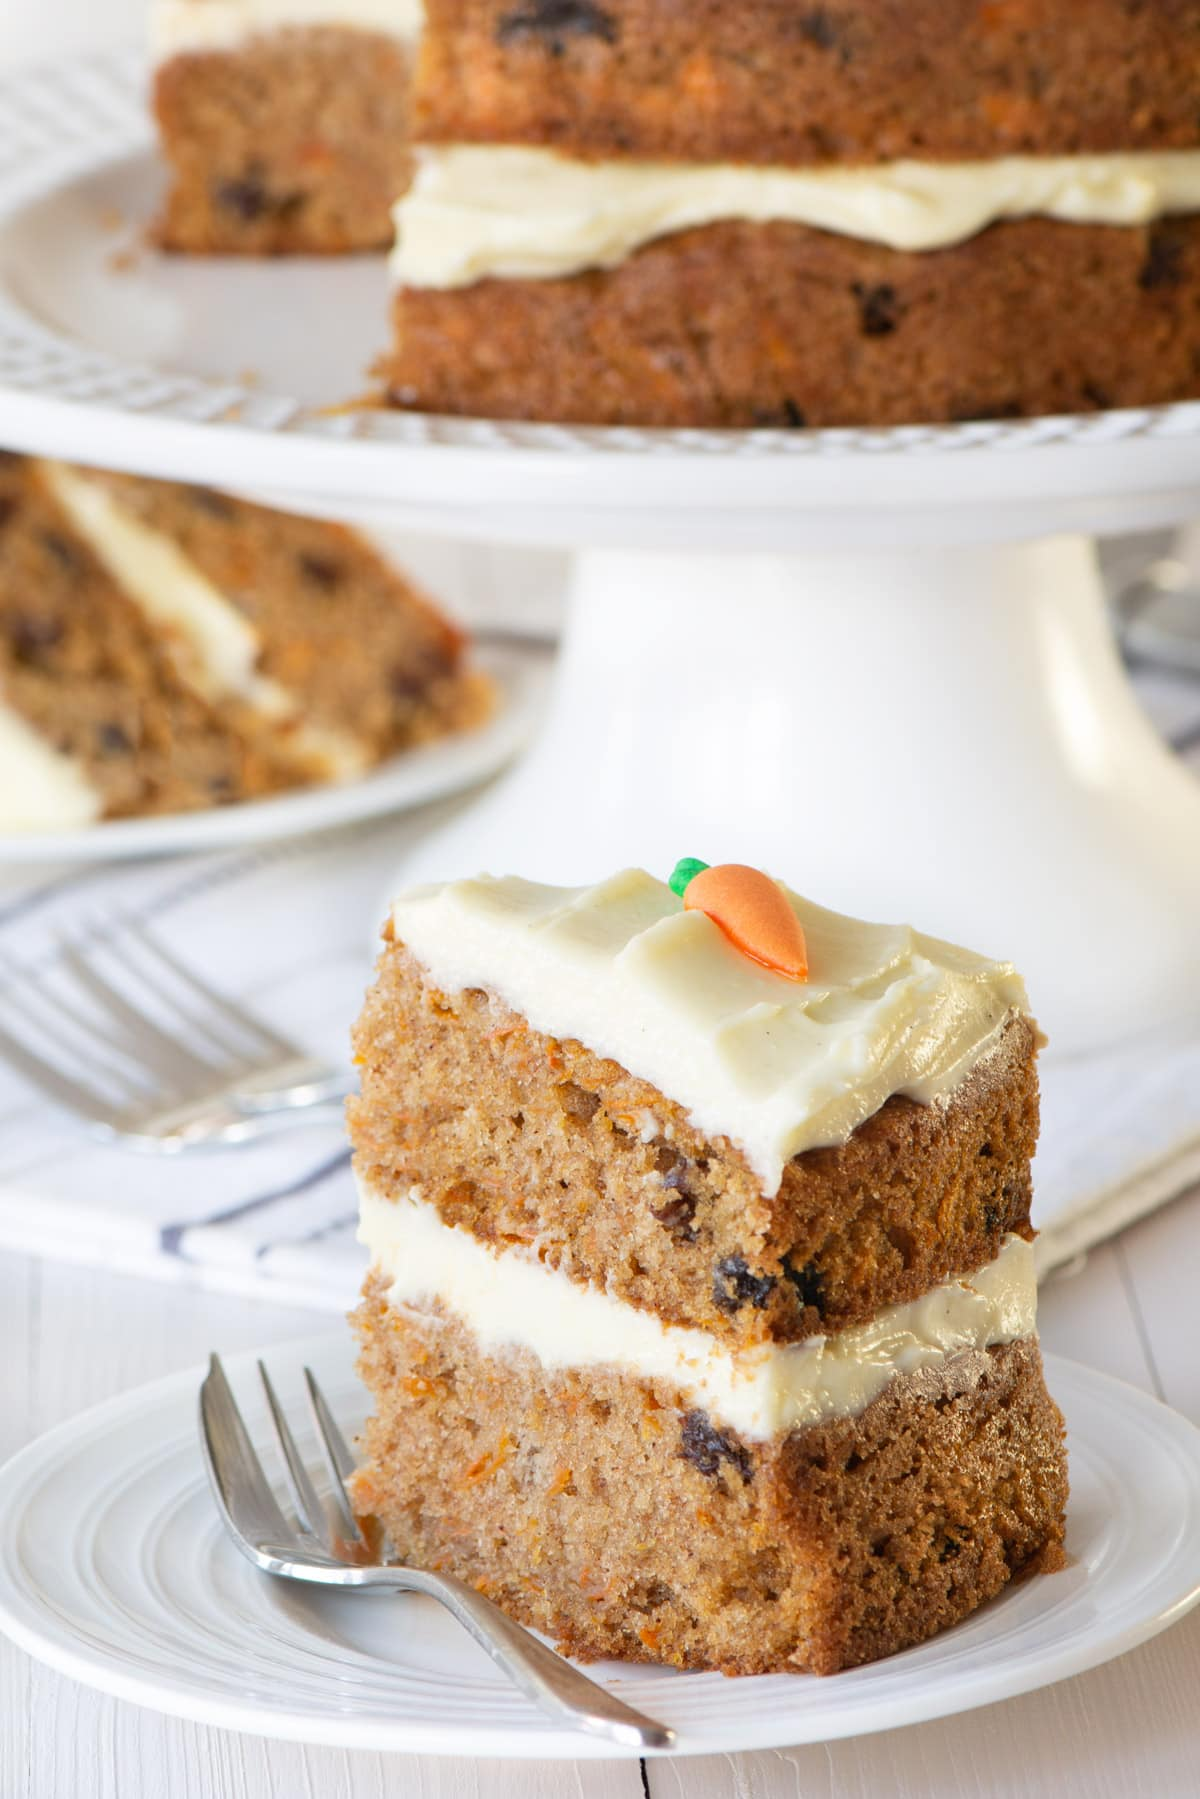 A slice of carrot cake on a white plate. The remaining cake is in the background. The slice shows the raisins running through the carrot cake sponge.